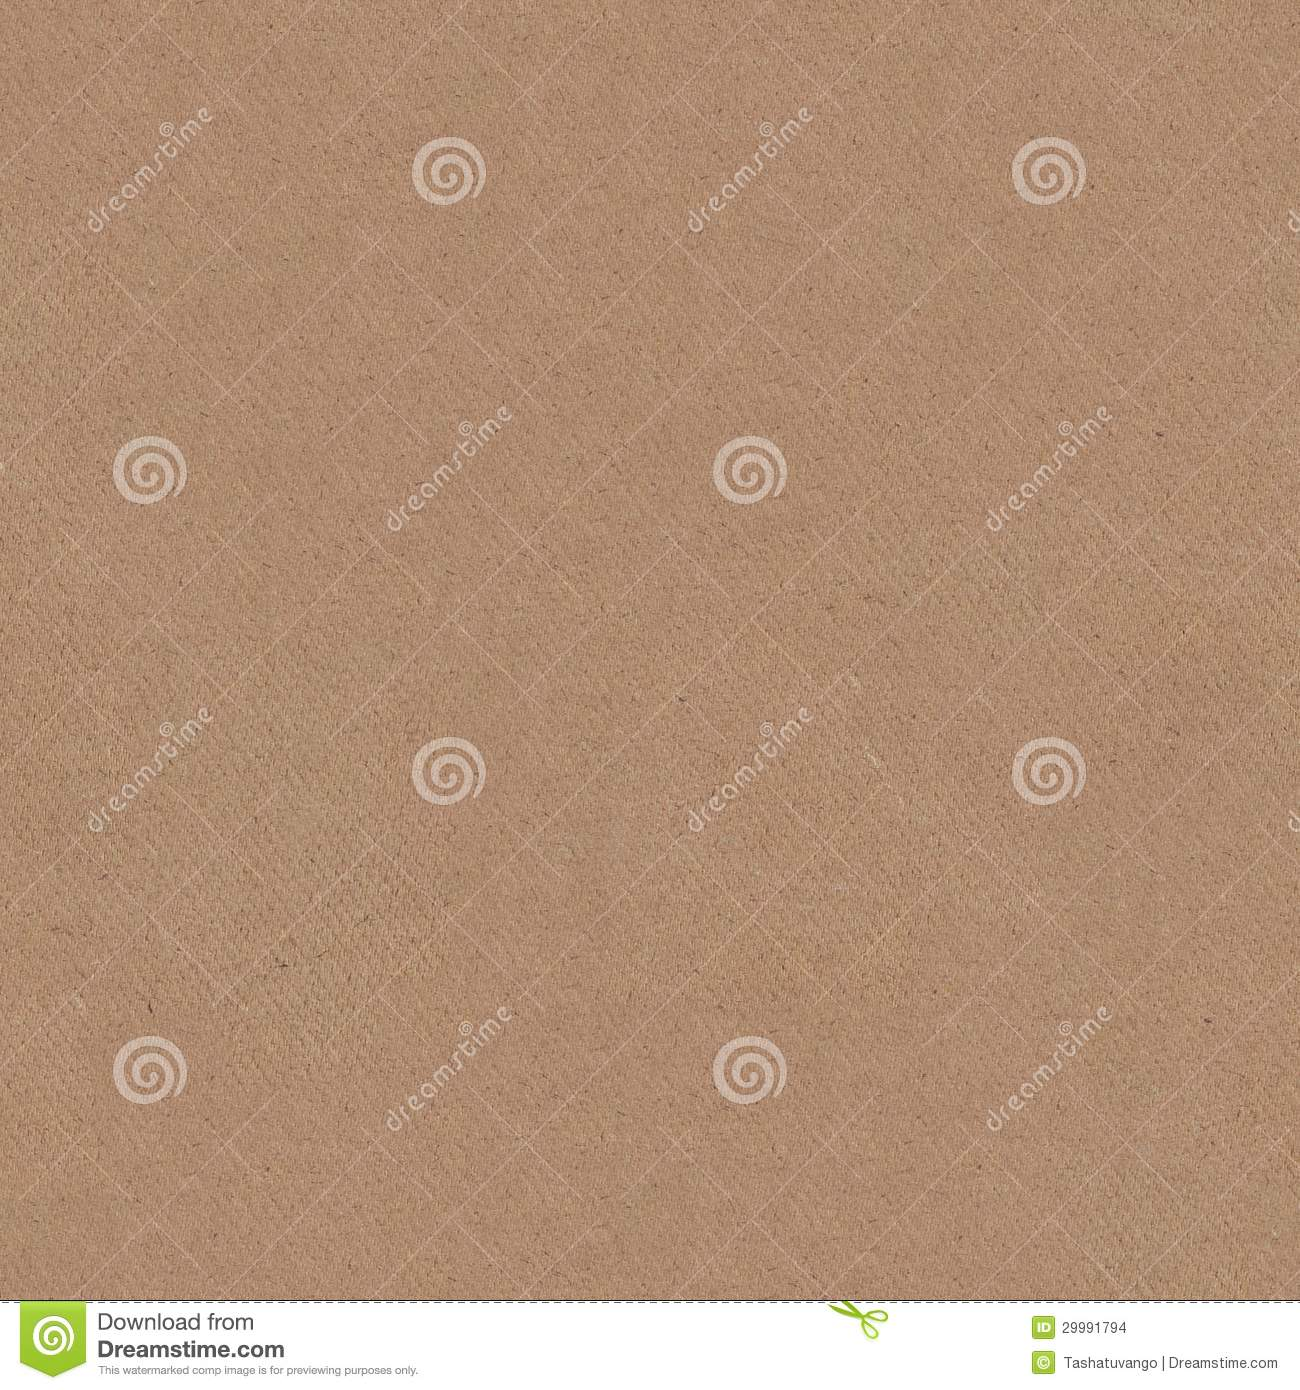 Medium Density Flooring ~ Fiberboard mdf seamless texture stock photo image of